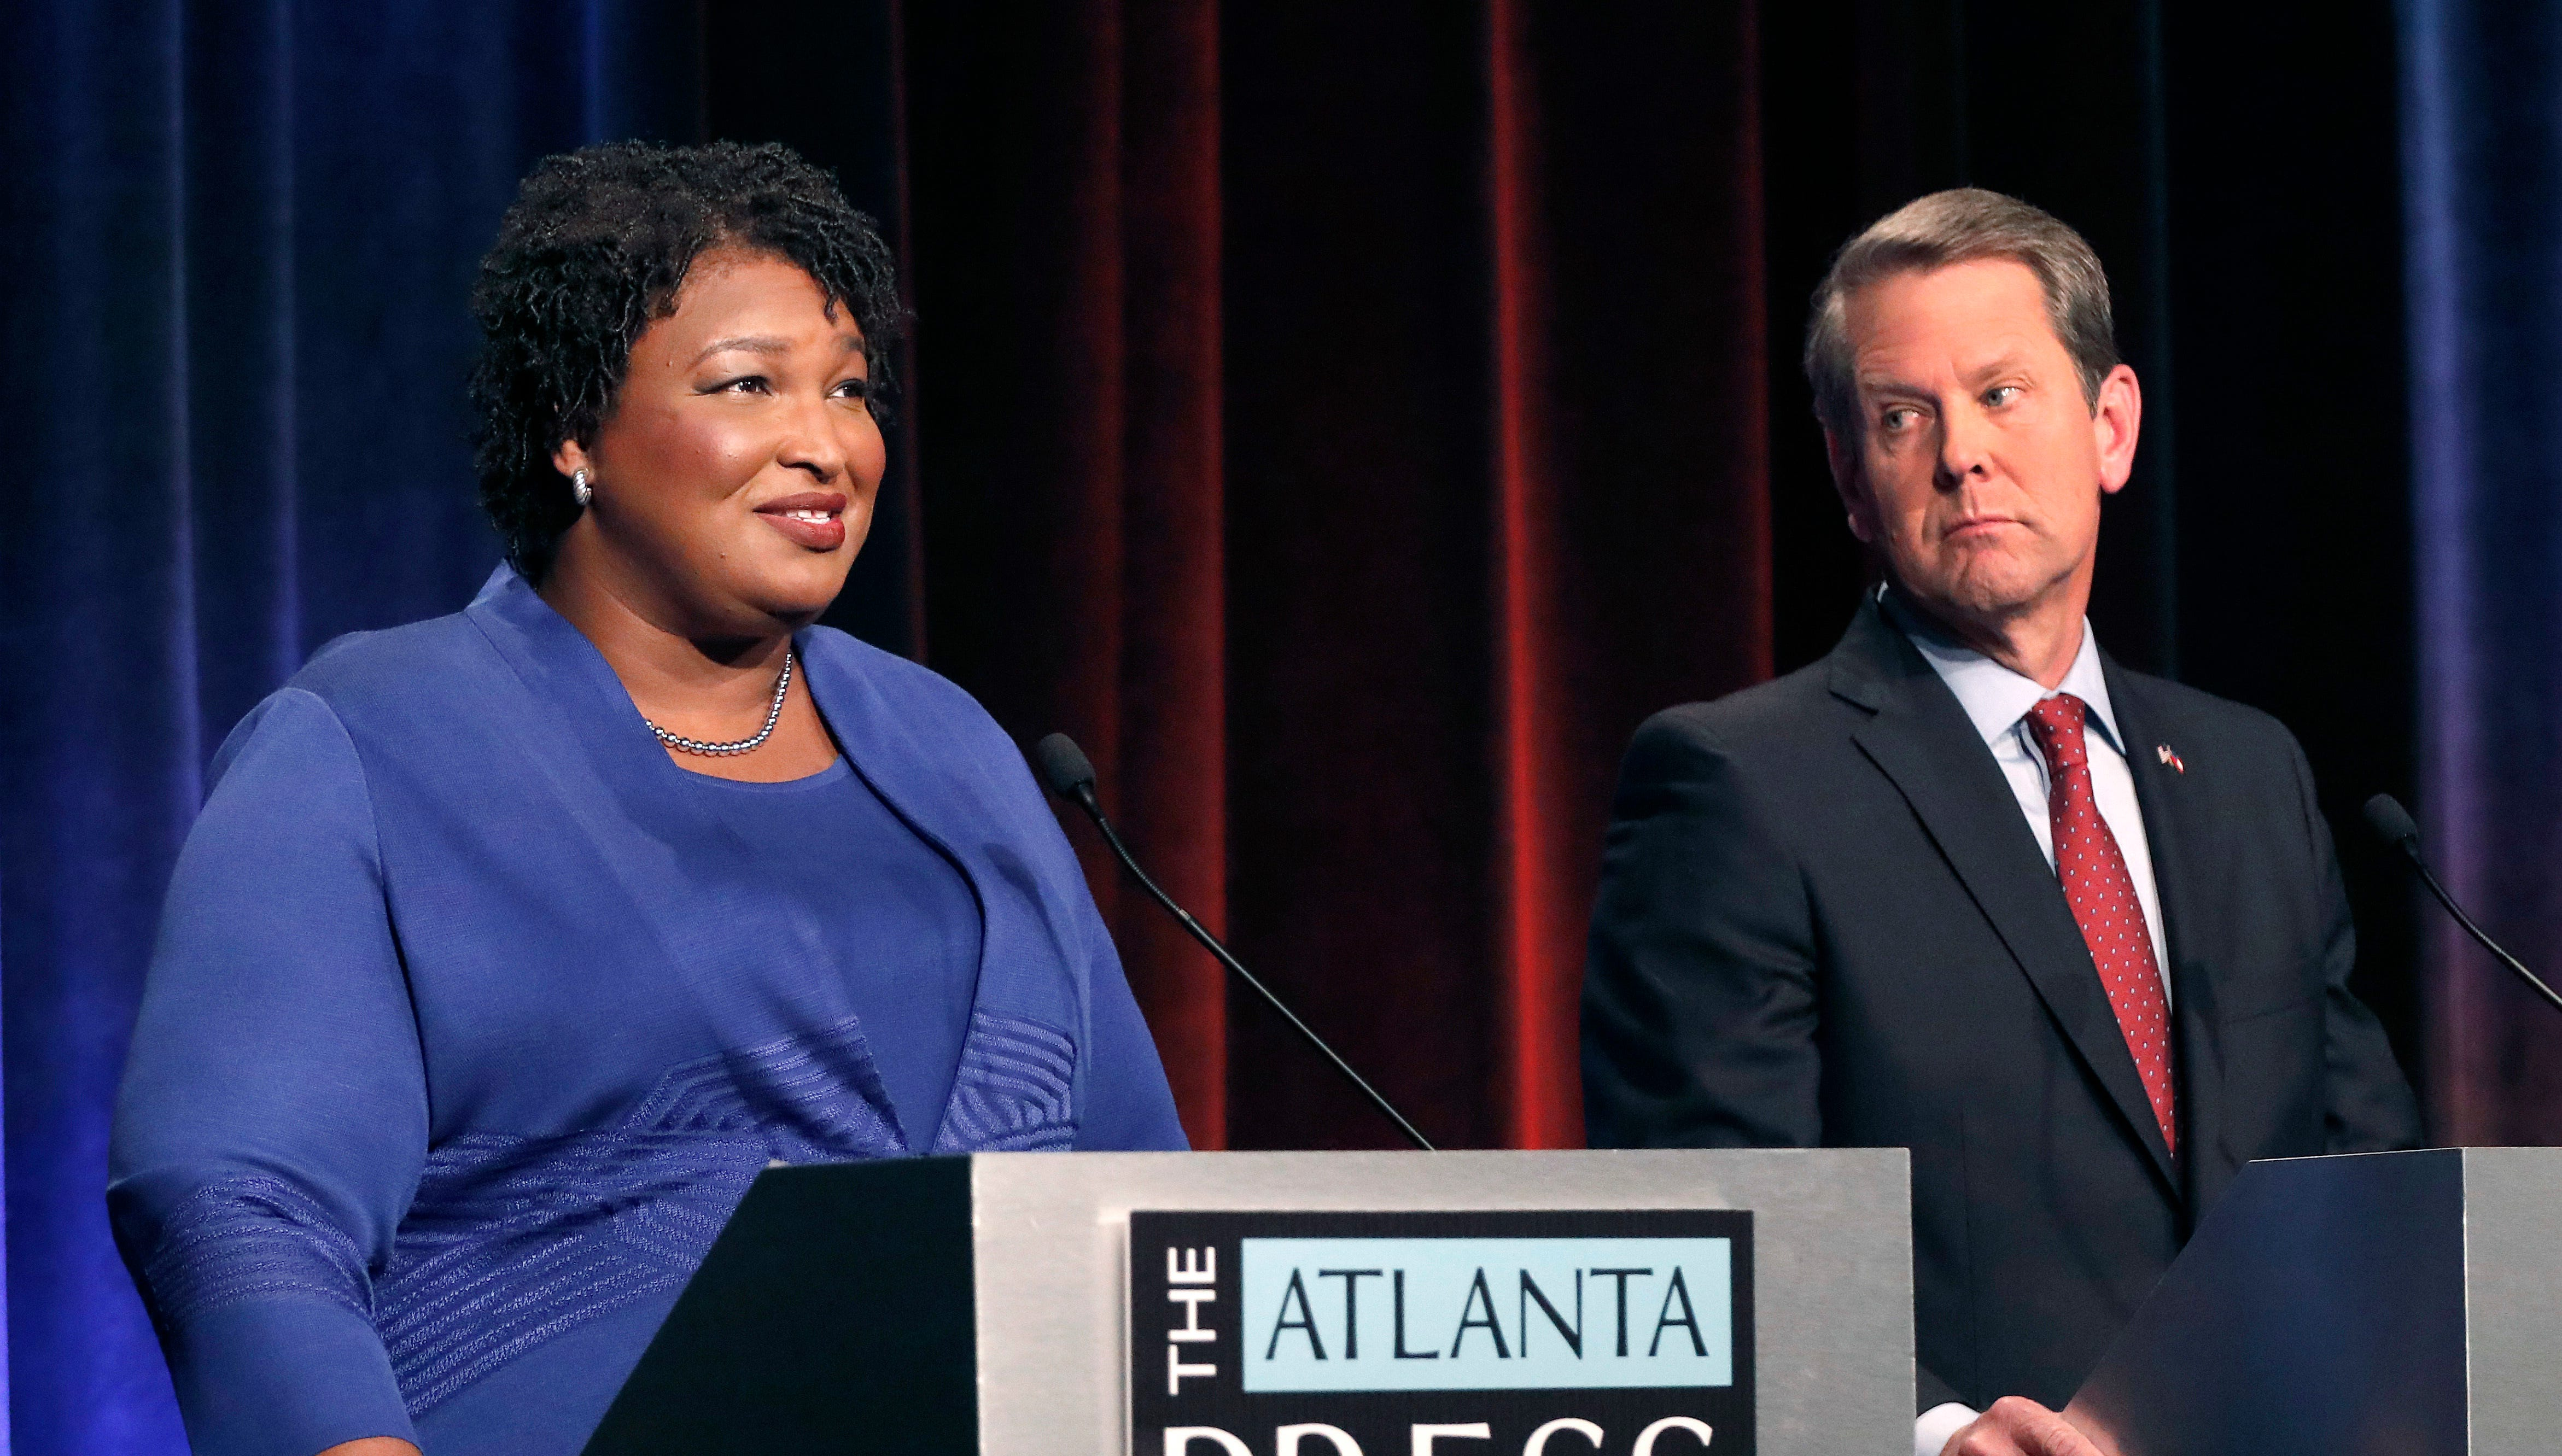 In this Tuesday, Oct. 23, 2018 file photo, Democratic gubernatorial candidate for Georgia Stacey Abrams, left, speaks as her Republican opponent Secretary of State Brian Kemp looks on during a debate in Atlanta.